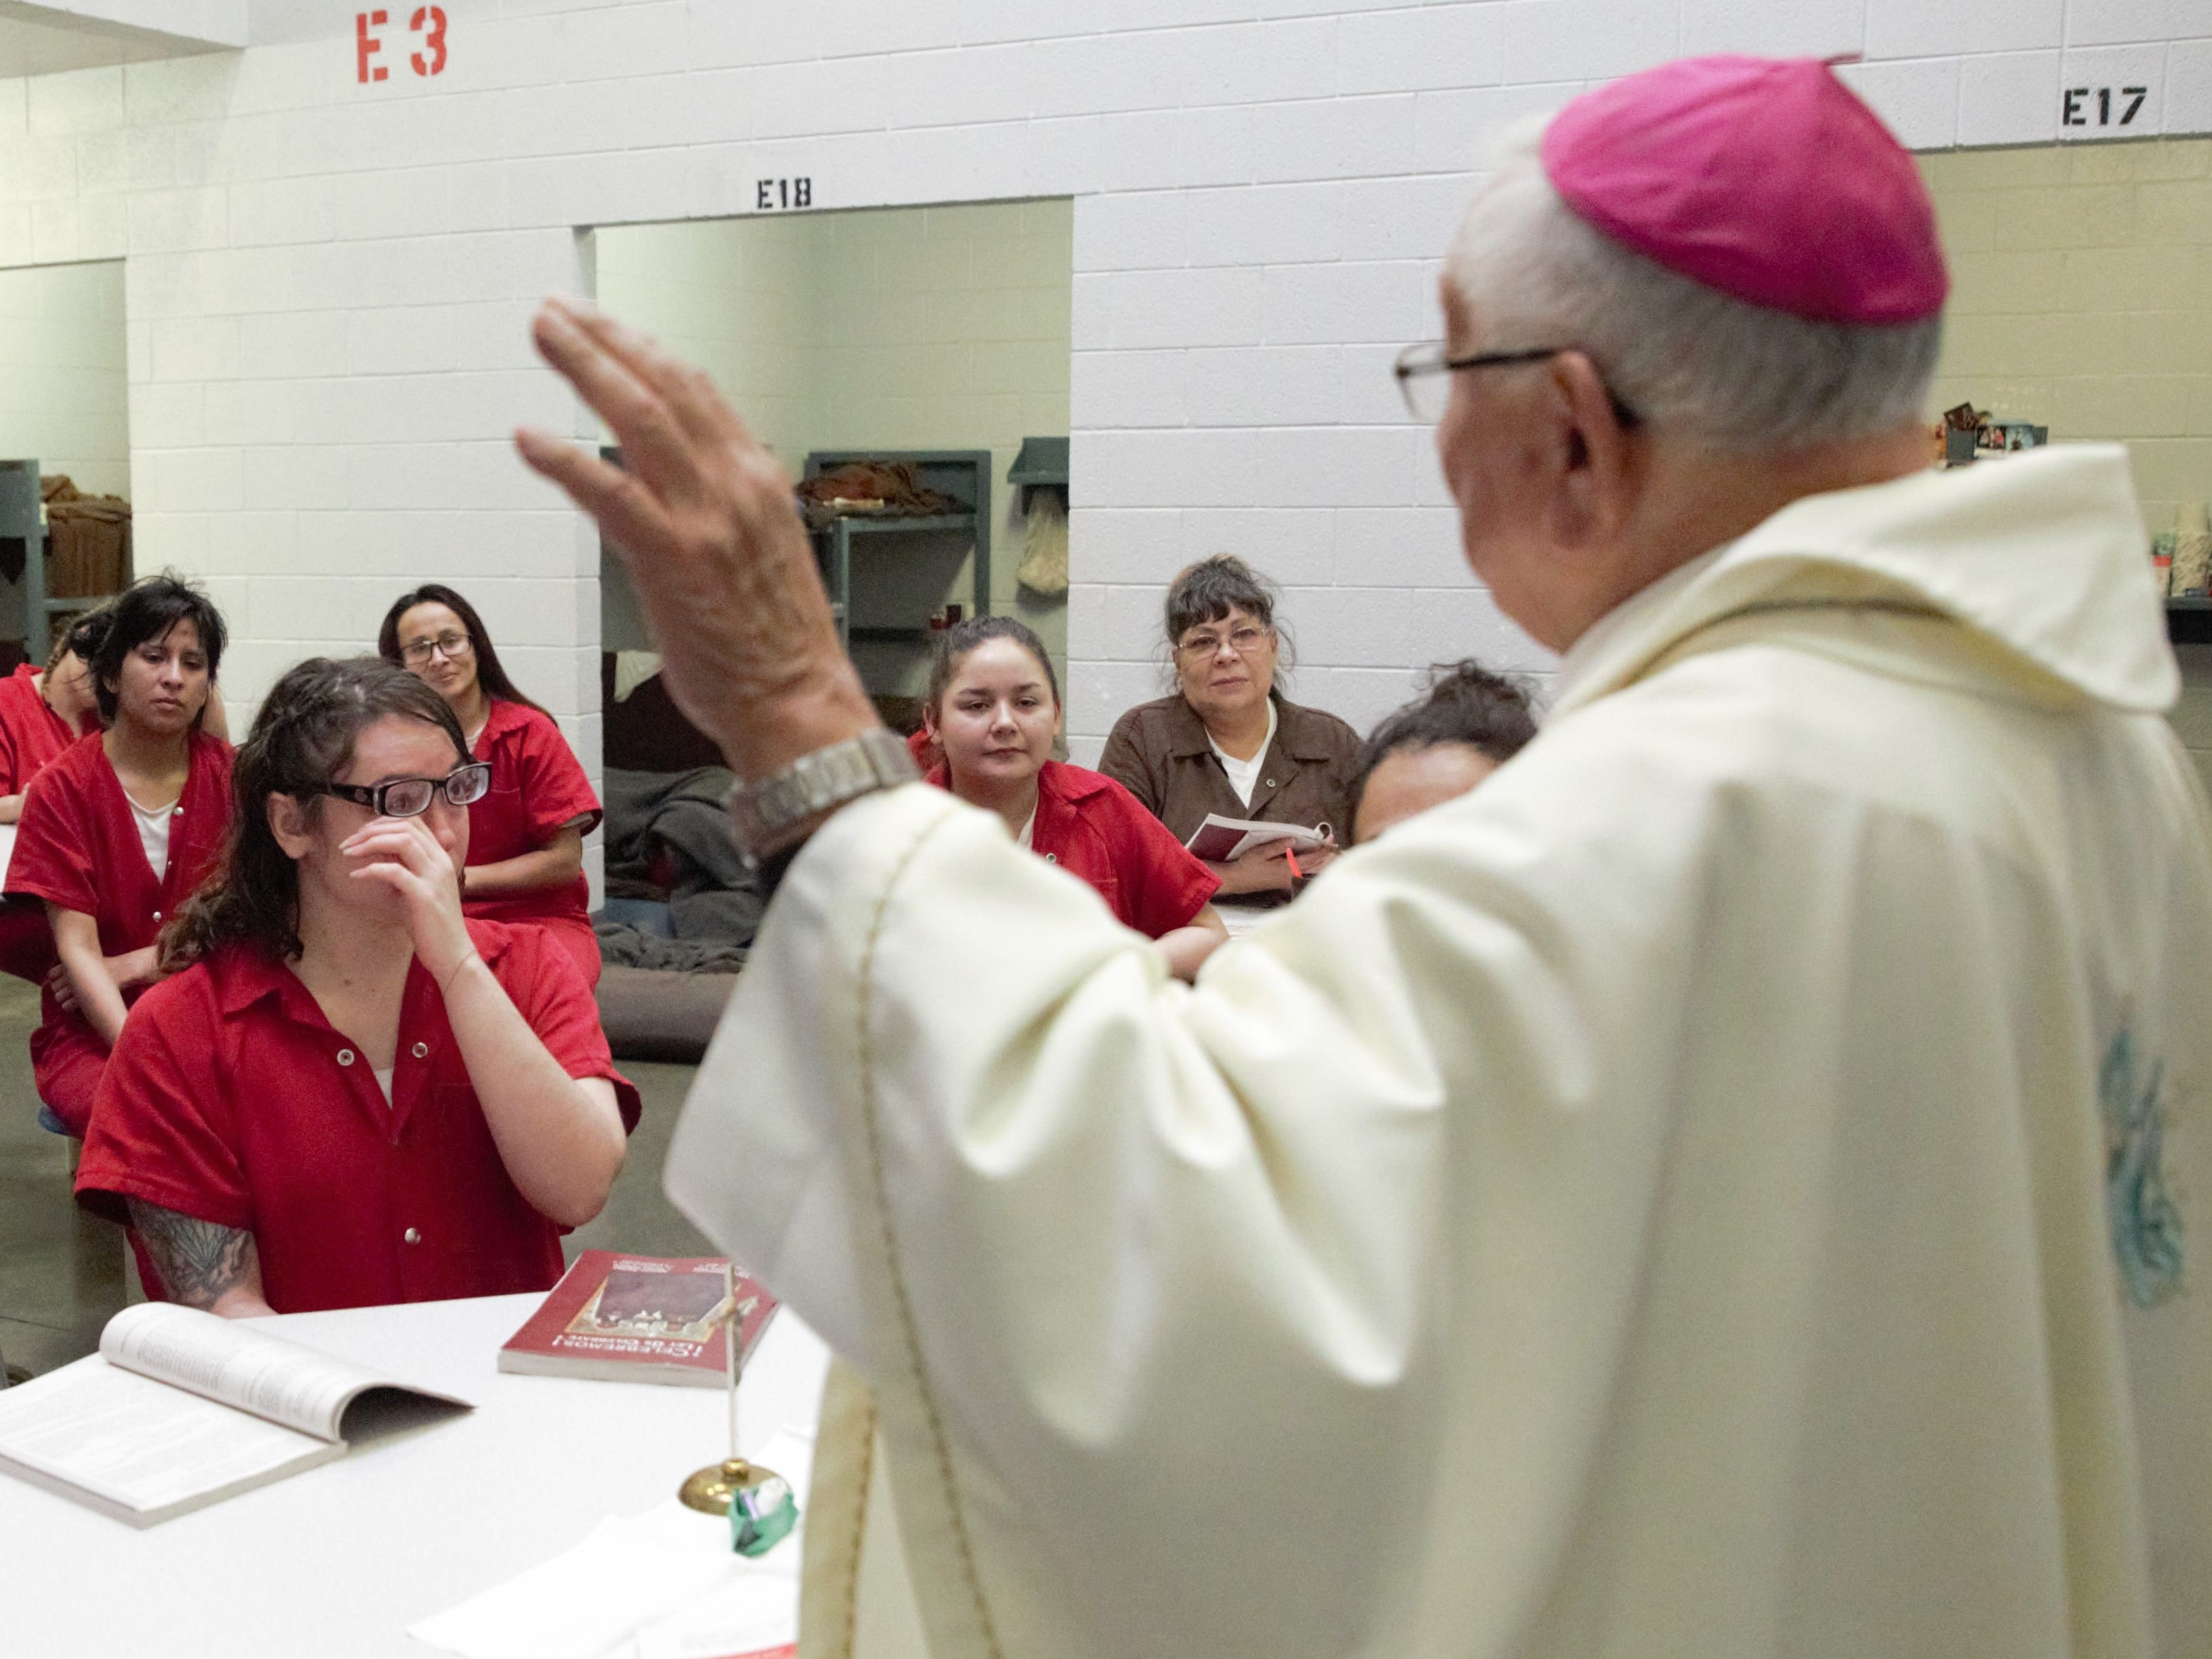 Bishop Emeritus Ricardo Ramírez of the Catholic Diocese of Las Cruces hosts an emotional Christmas Day Mass for a group of women in the Doña Ana County Detention Center on Tuesday, Dec. 25, 2018.